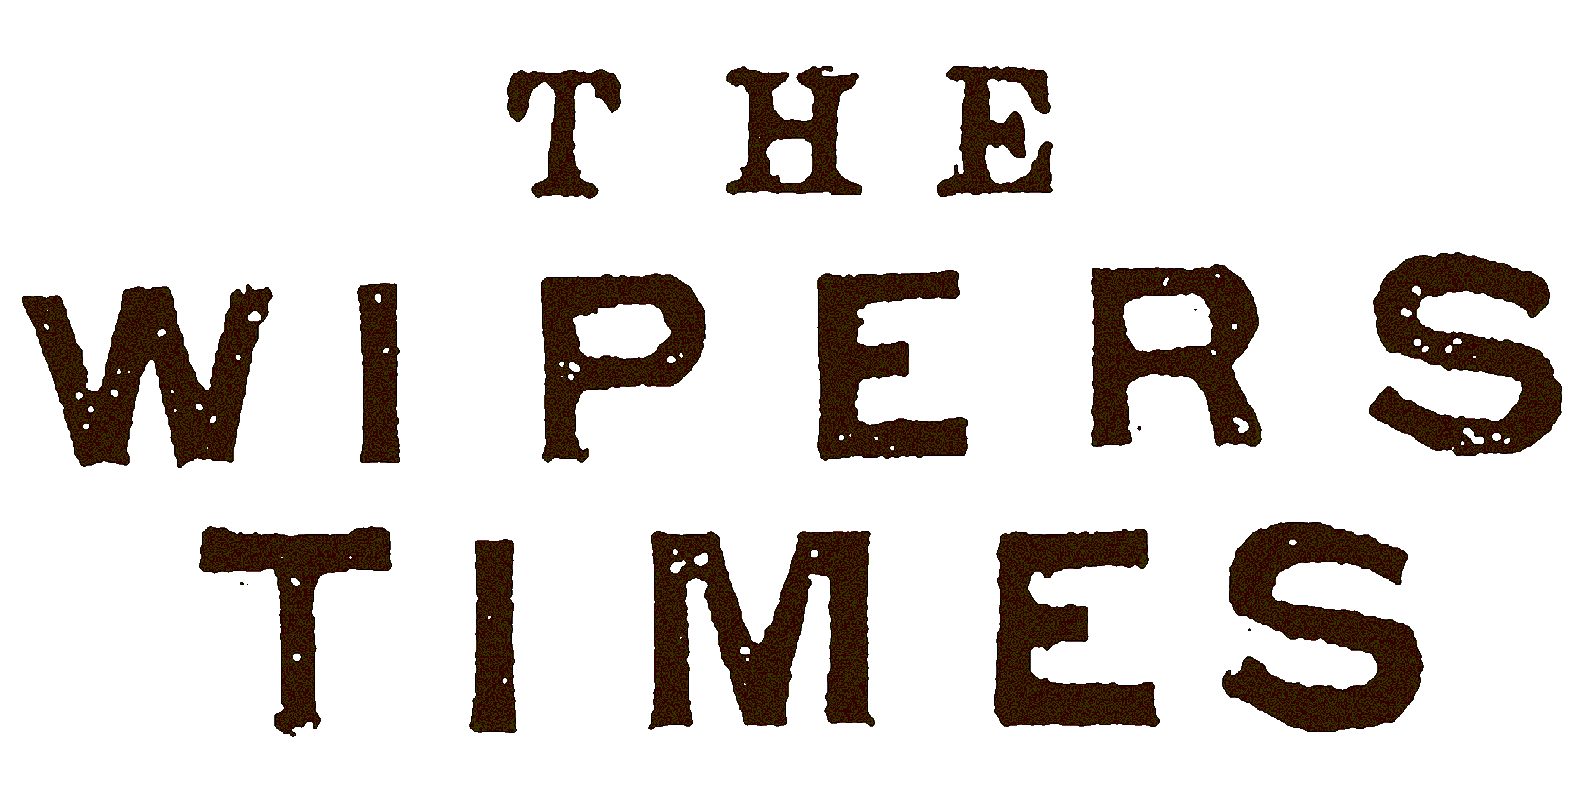 The Wipers Times by Ian Hislop & Nick Newman